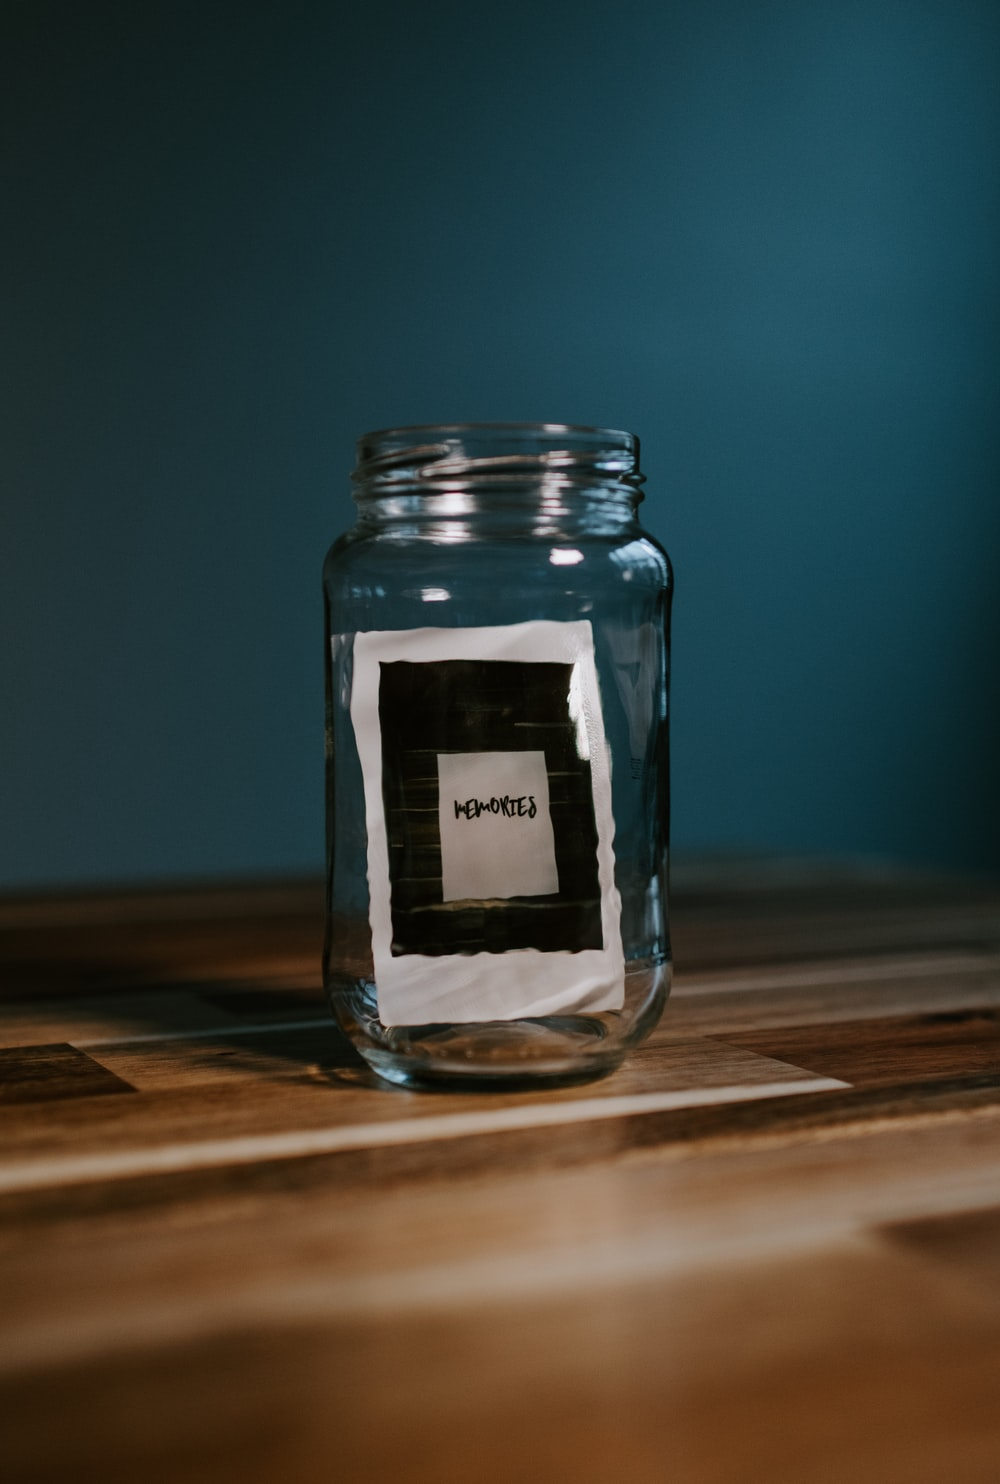 clear glass jar on brown wooden table